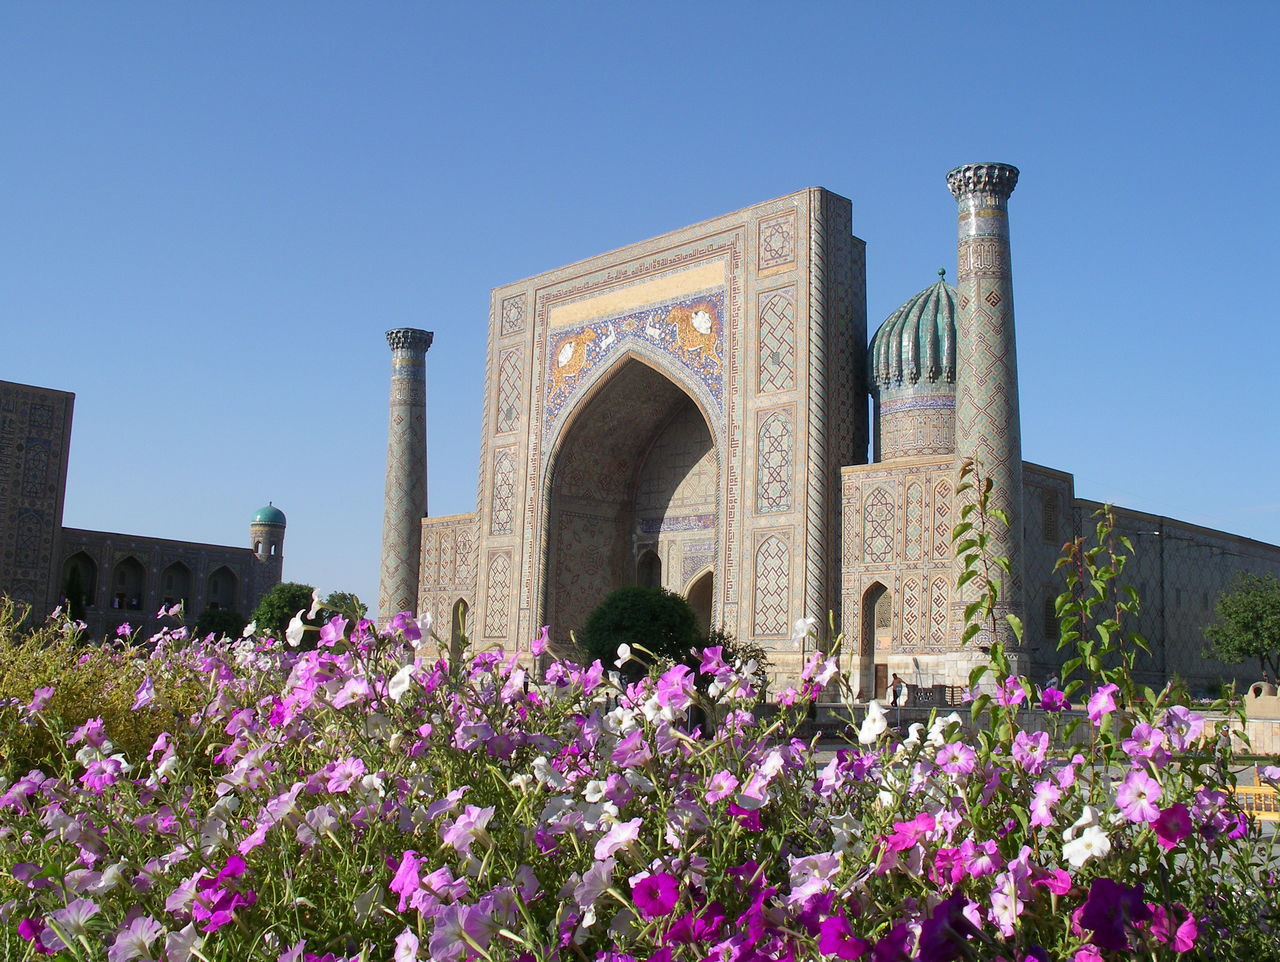 Flowers in front of a mosque in Samarkand, Uzbekistan on the Silk Road Architecture Built Structure Clear Sky Day Flower History Islam Islamic Architecture Madrassa Minarets Mosque Muslim Architecture No People Outdoors Samarkand Samarqu Silk Road Silk Road Adventure Silk Route Tree Uzbekistan Fresh On Eyeem